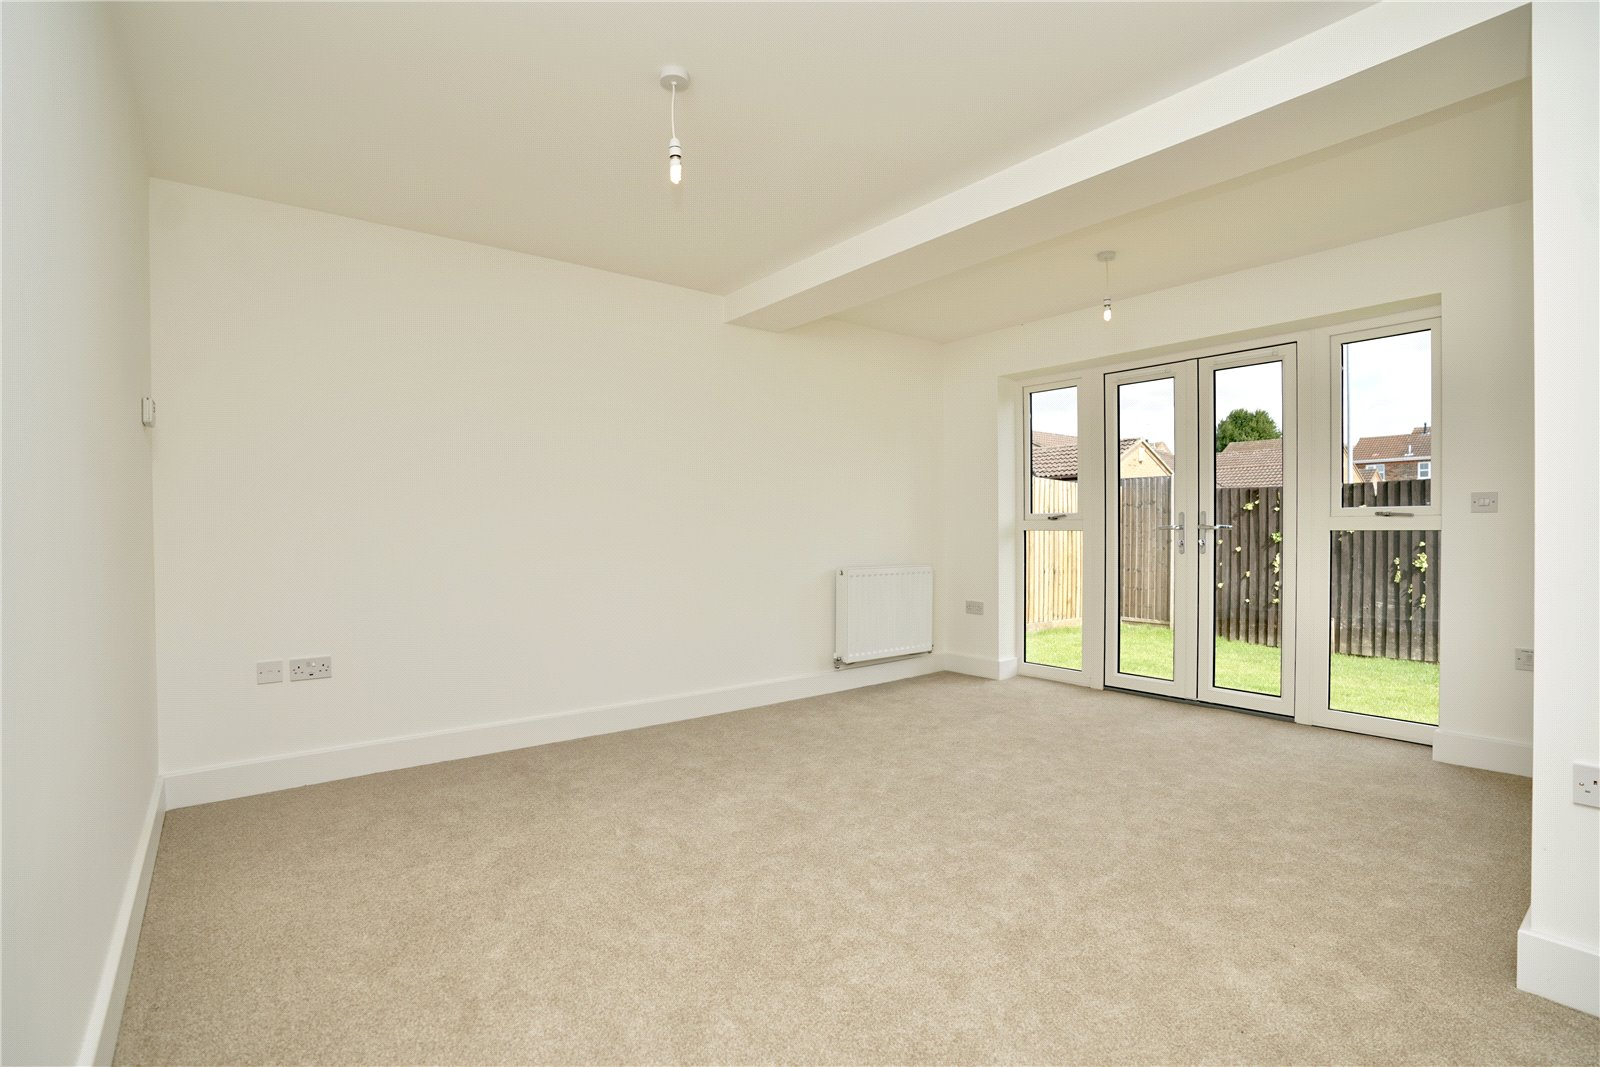 3 bed bungalow for sale in Whittlesey, PE7 1RU  - Property Image 4